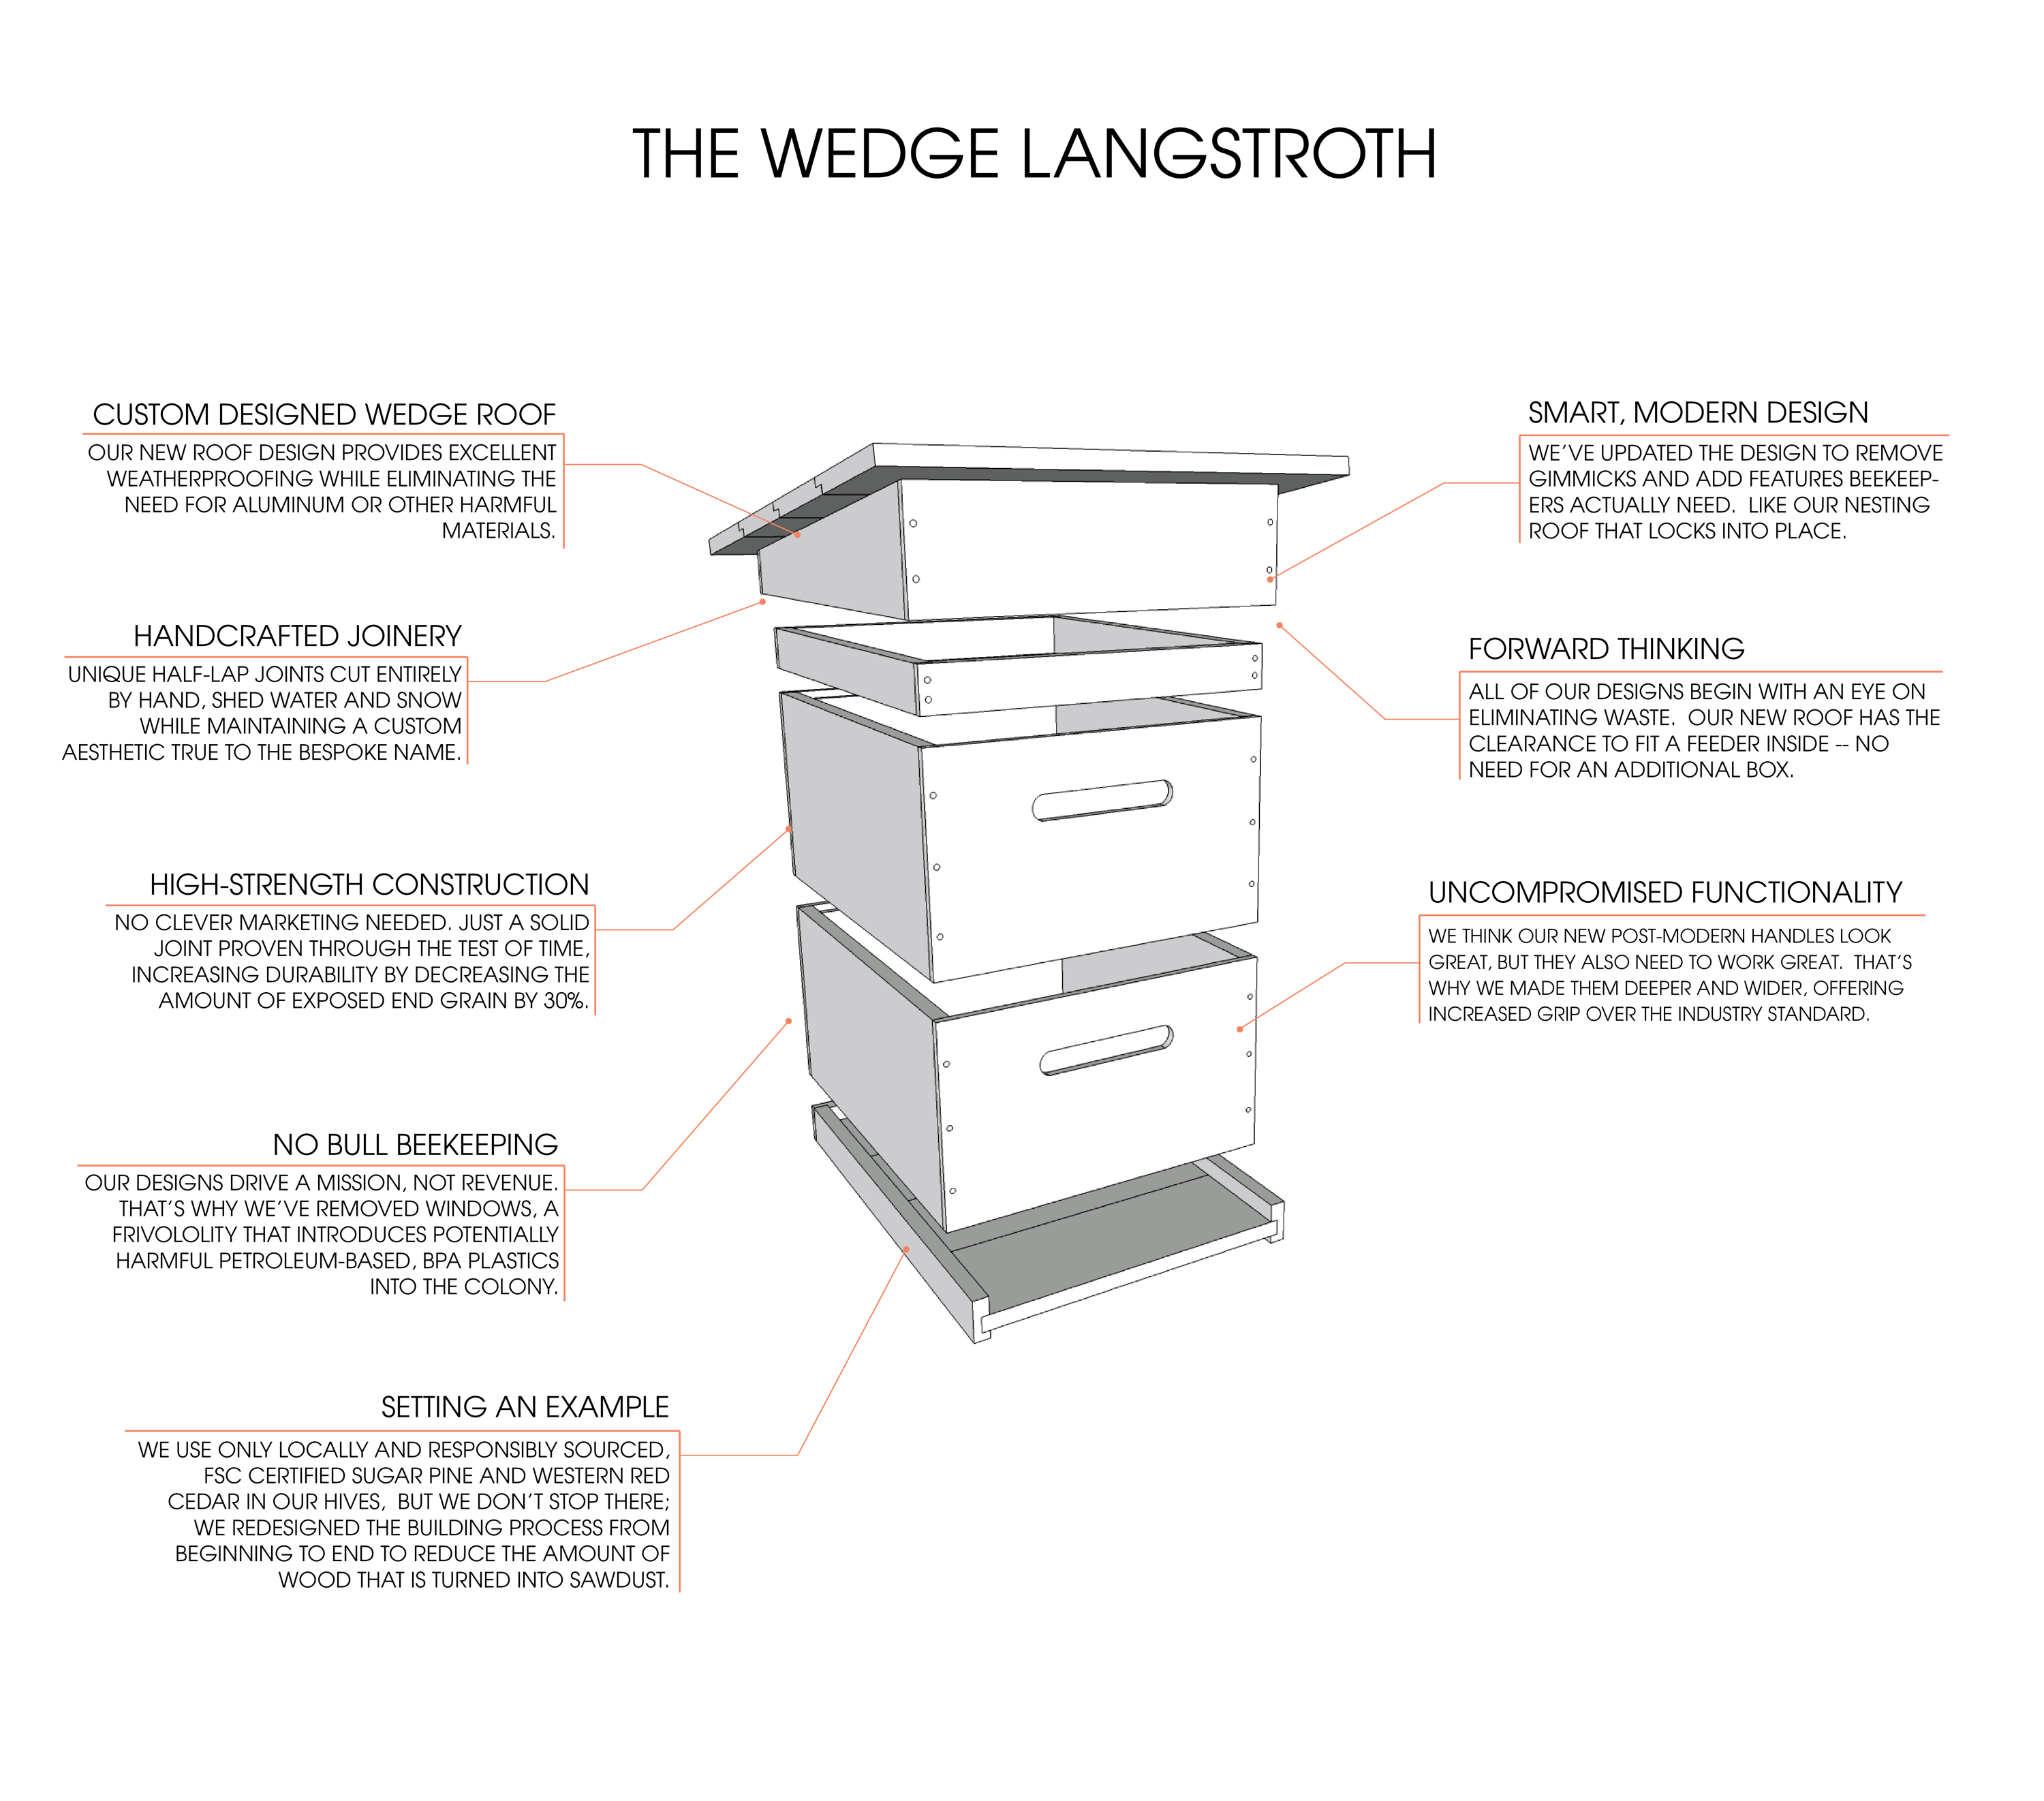 Everything you need to know about Wedge Langstroth bee hives for backyard beekeeping. Bespoke Bee Supply